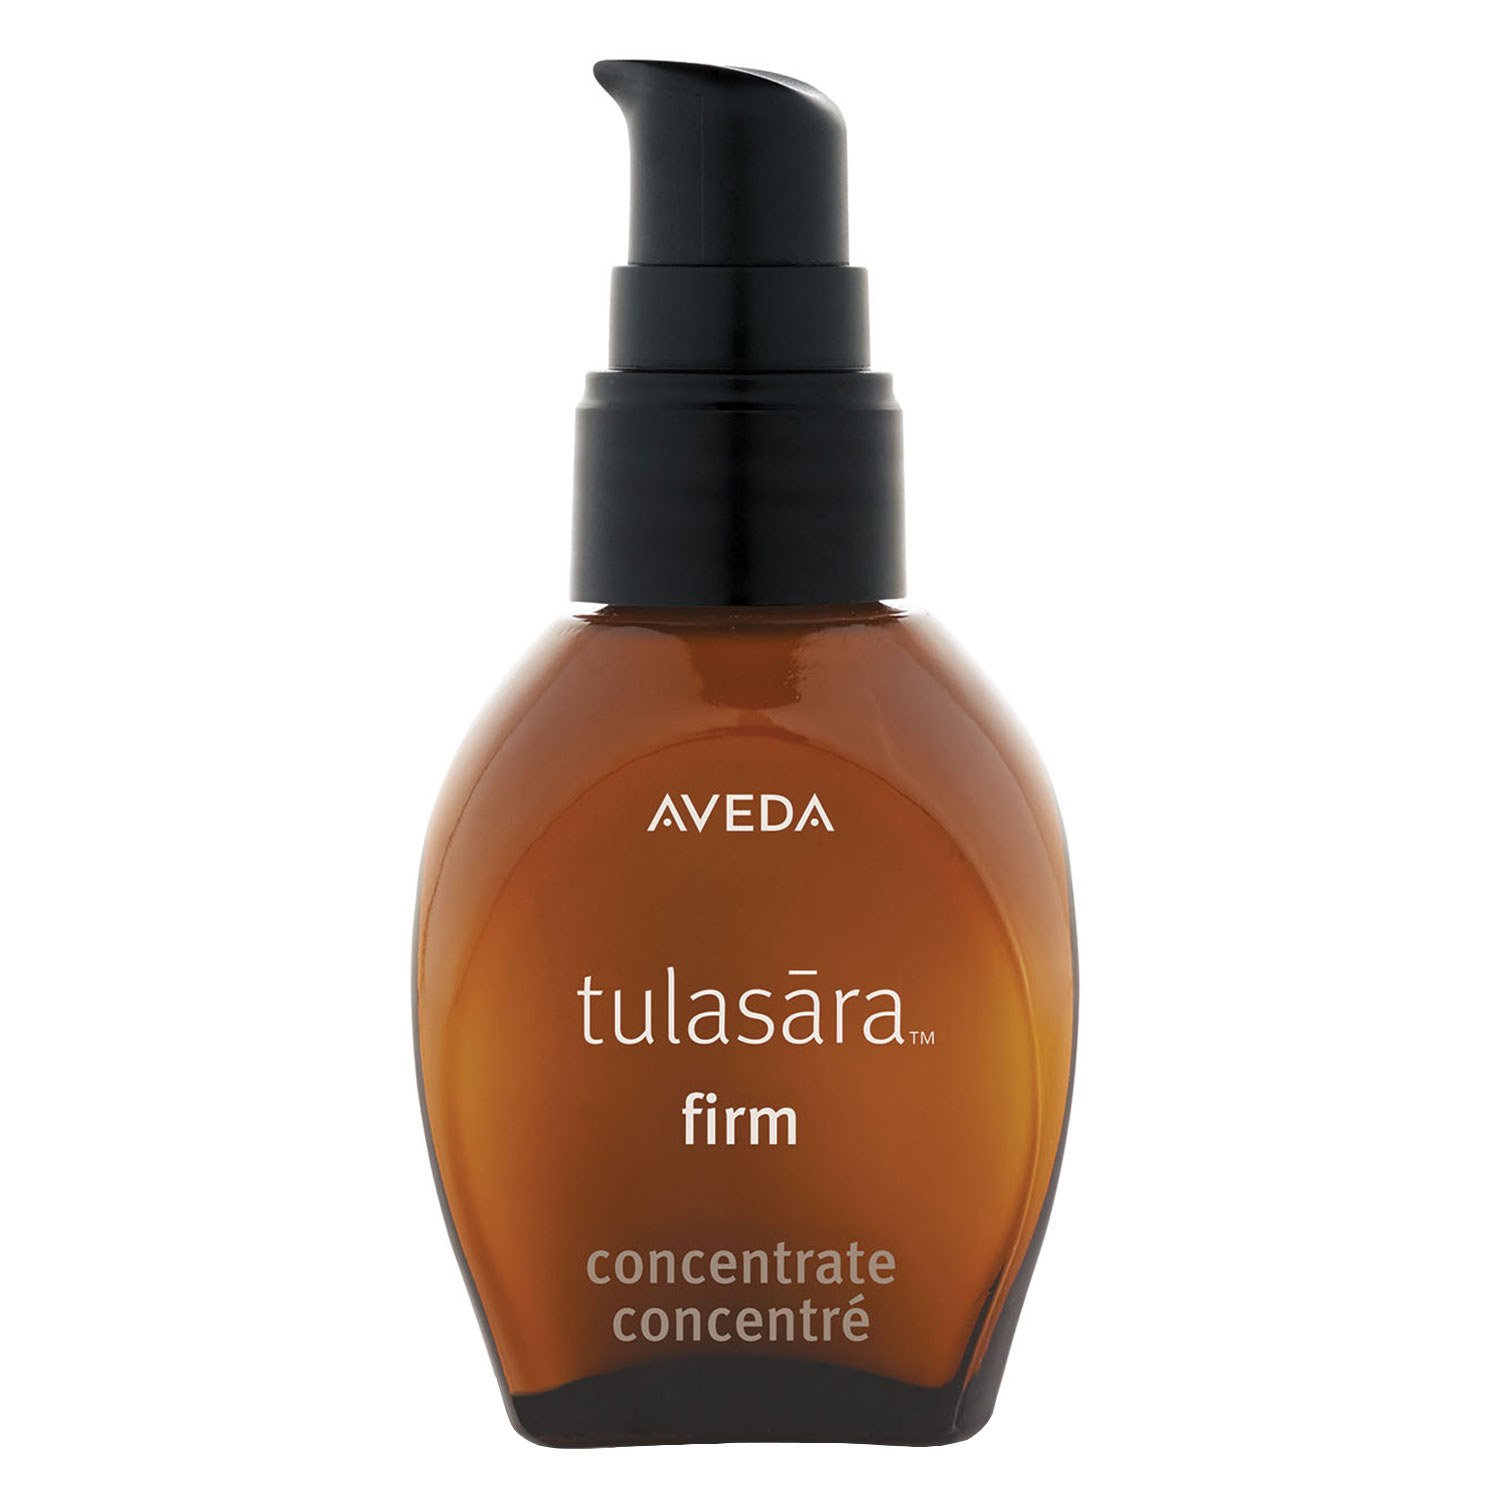 tulasara - firm concentrate